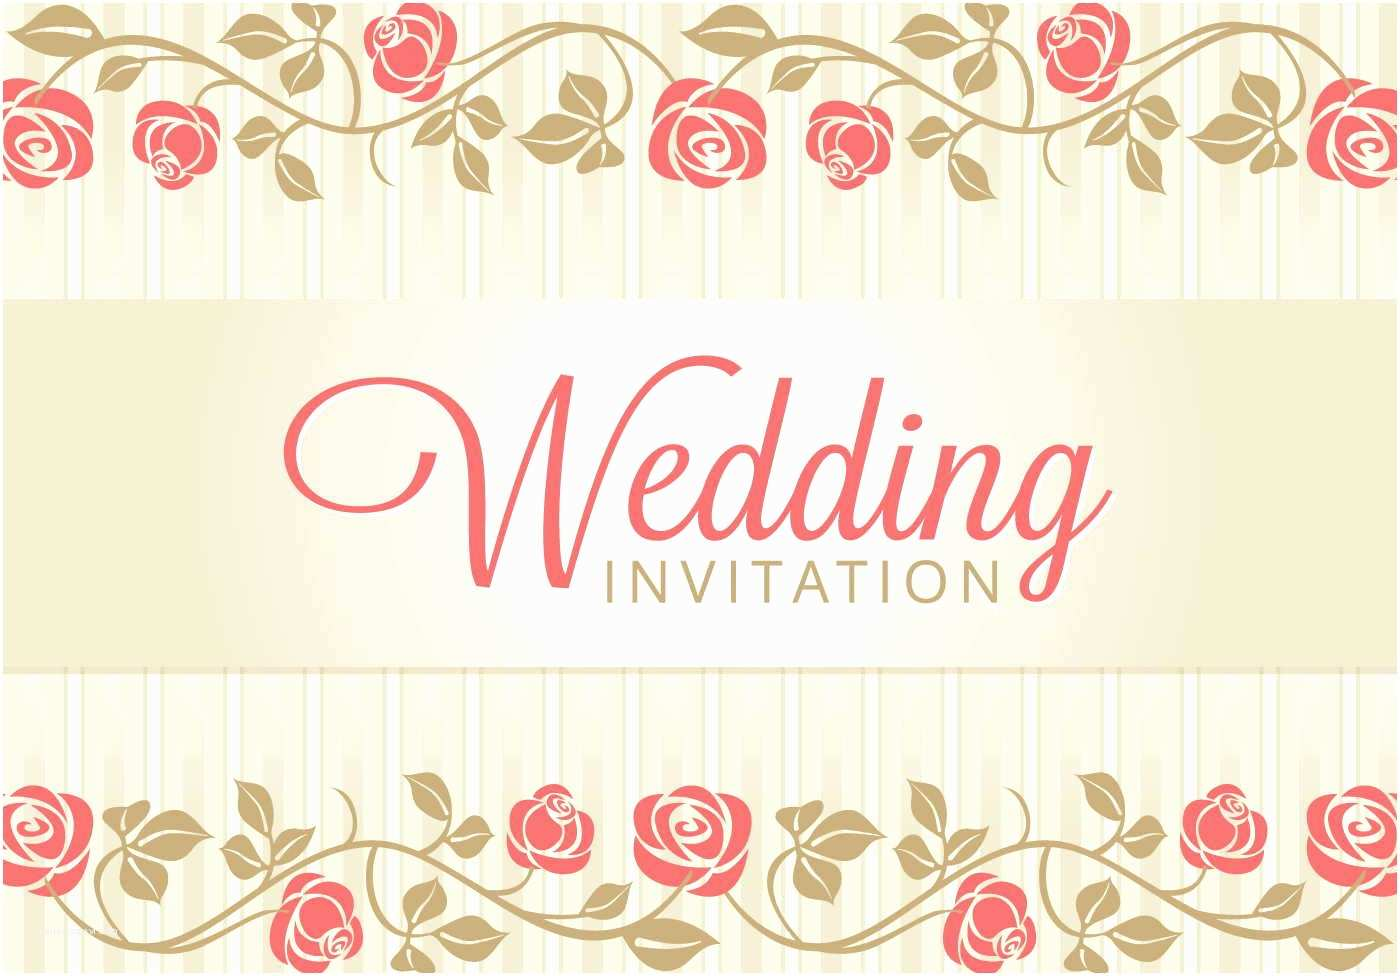 Background Images for Wedding Invitation Cards Vintage Wedding Backgrounds